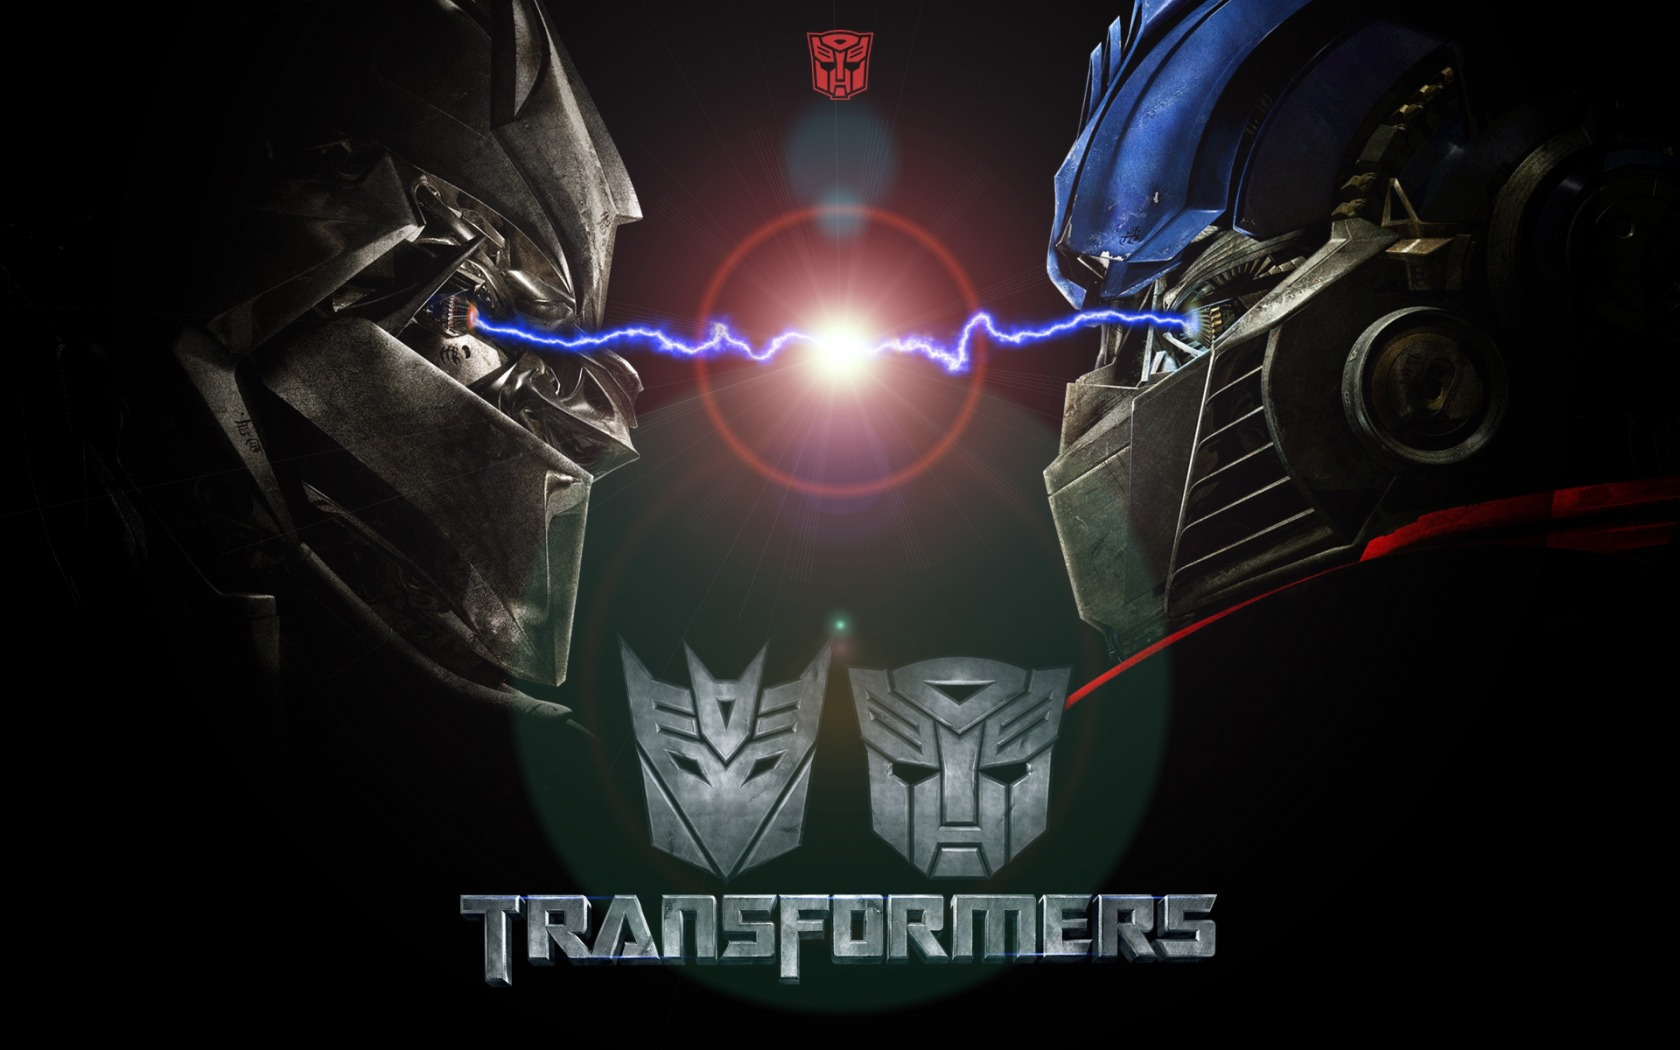 Transformers The Movie Wallpaper Transformers Movies Wallpapers In